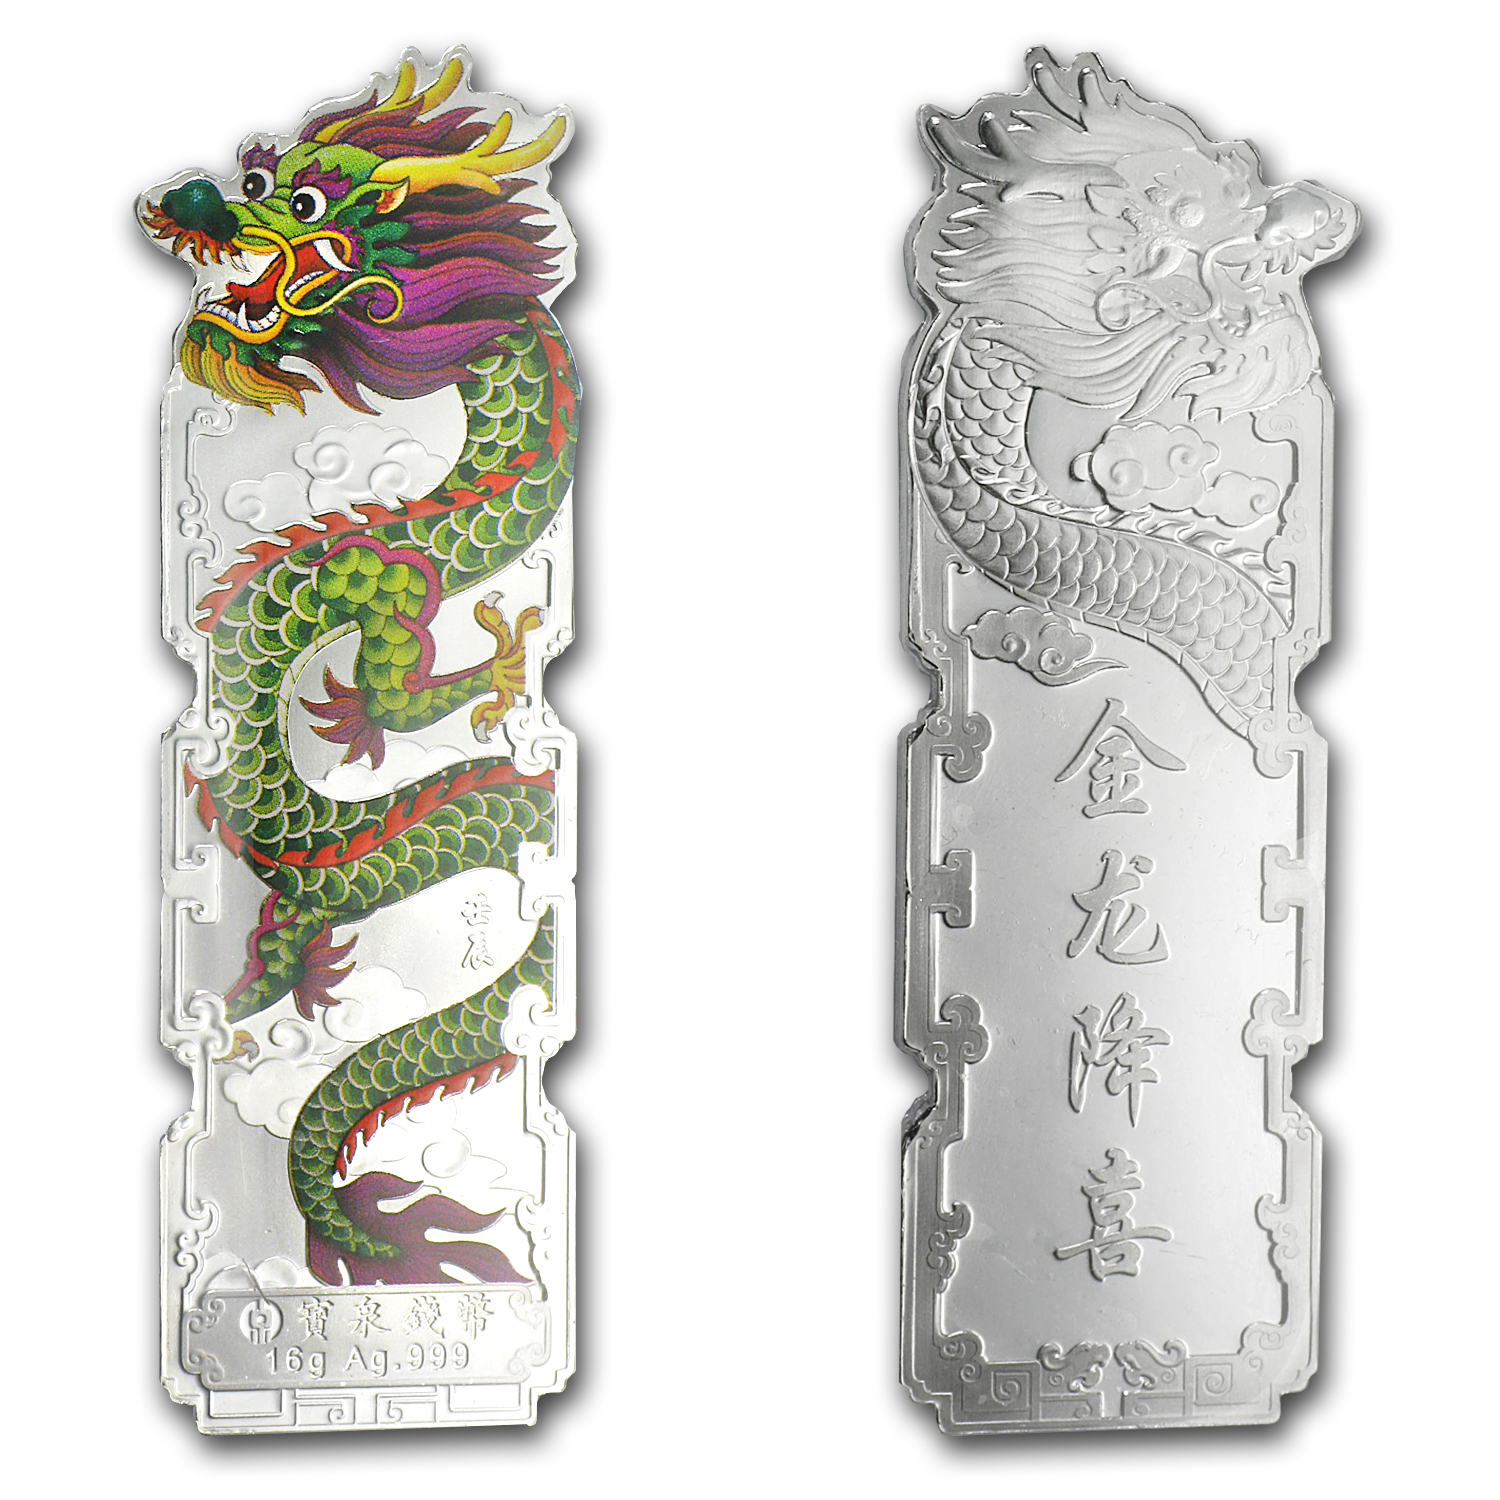 2012 China 5-Pc 16 gram Silver Dragon Bar Set (Colorized)